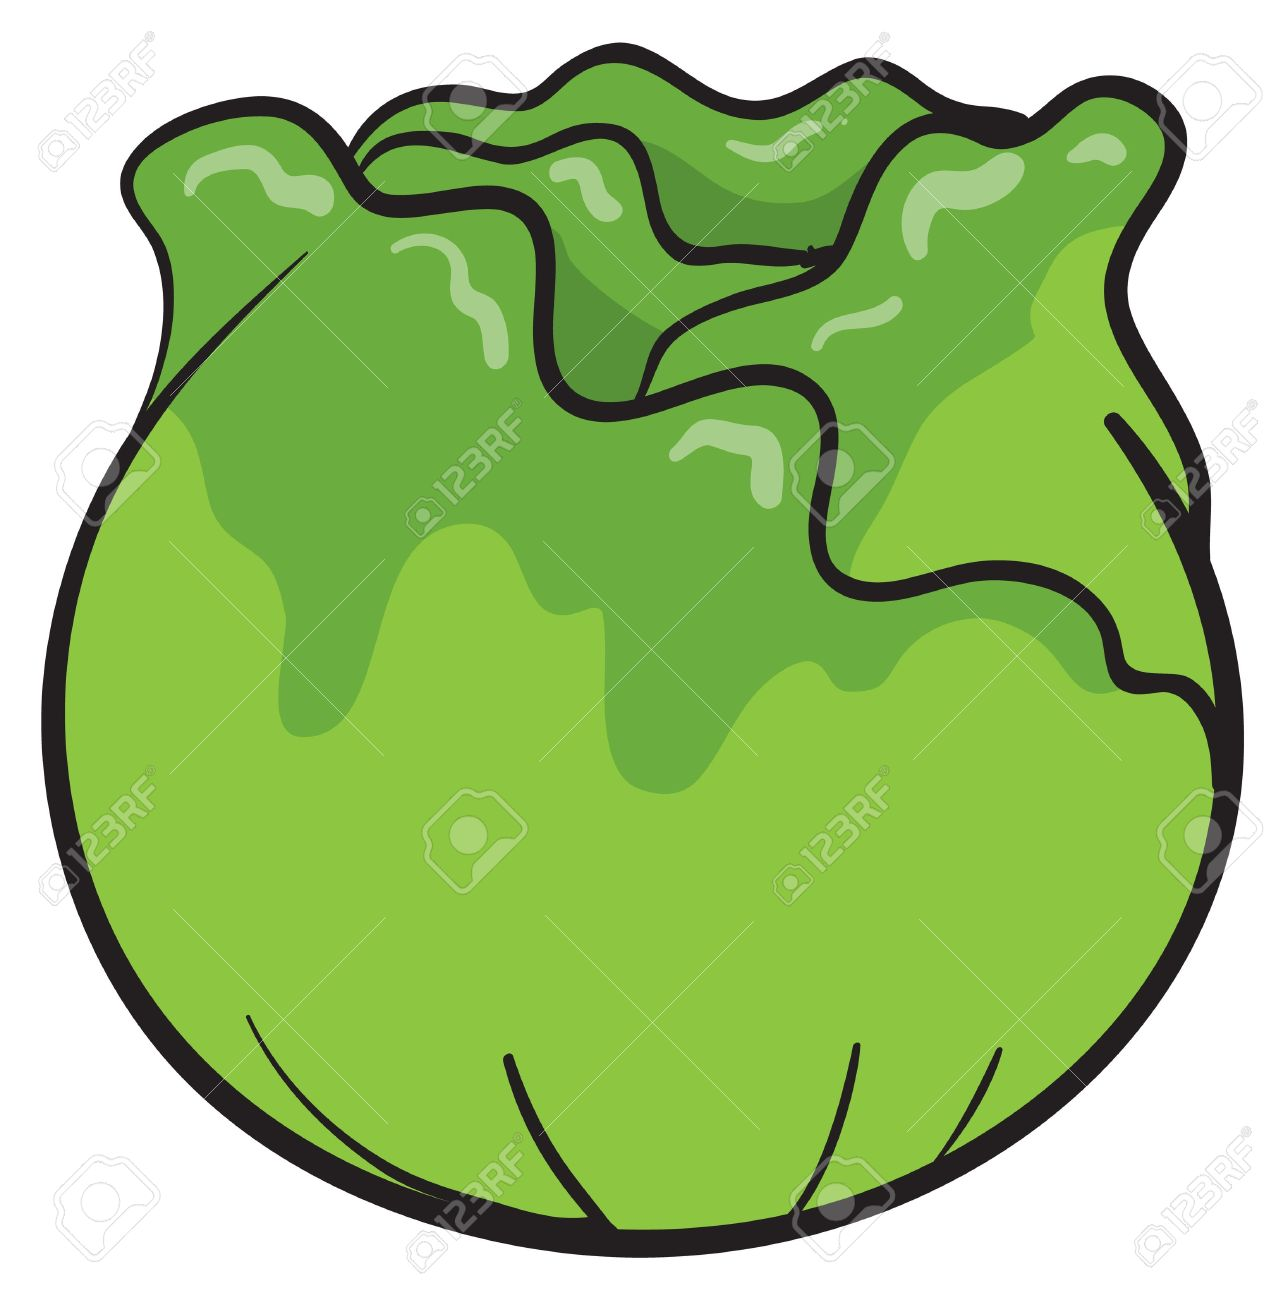 Cabbage clipart animated #4 - Cabbage Clipart